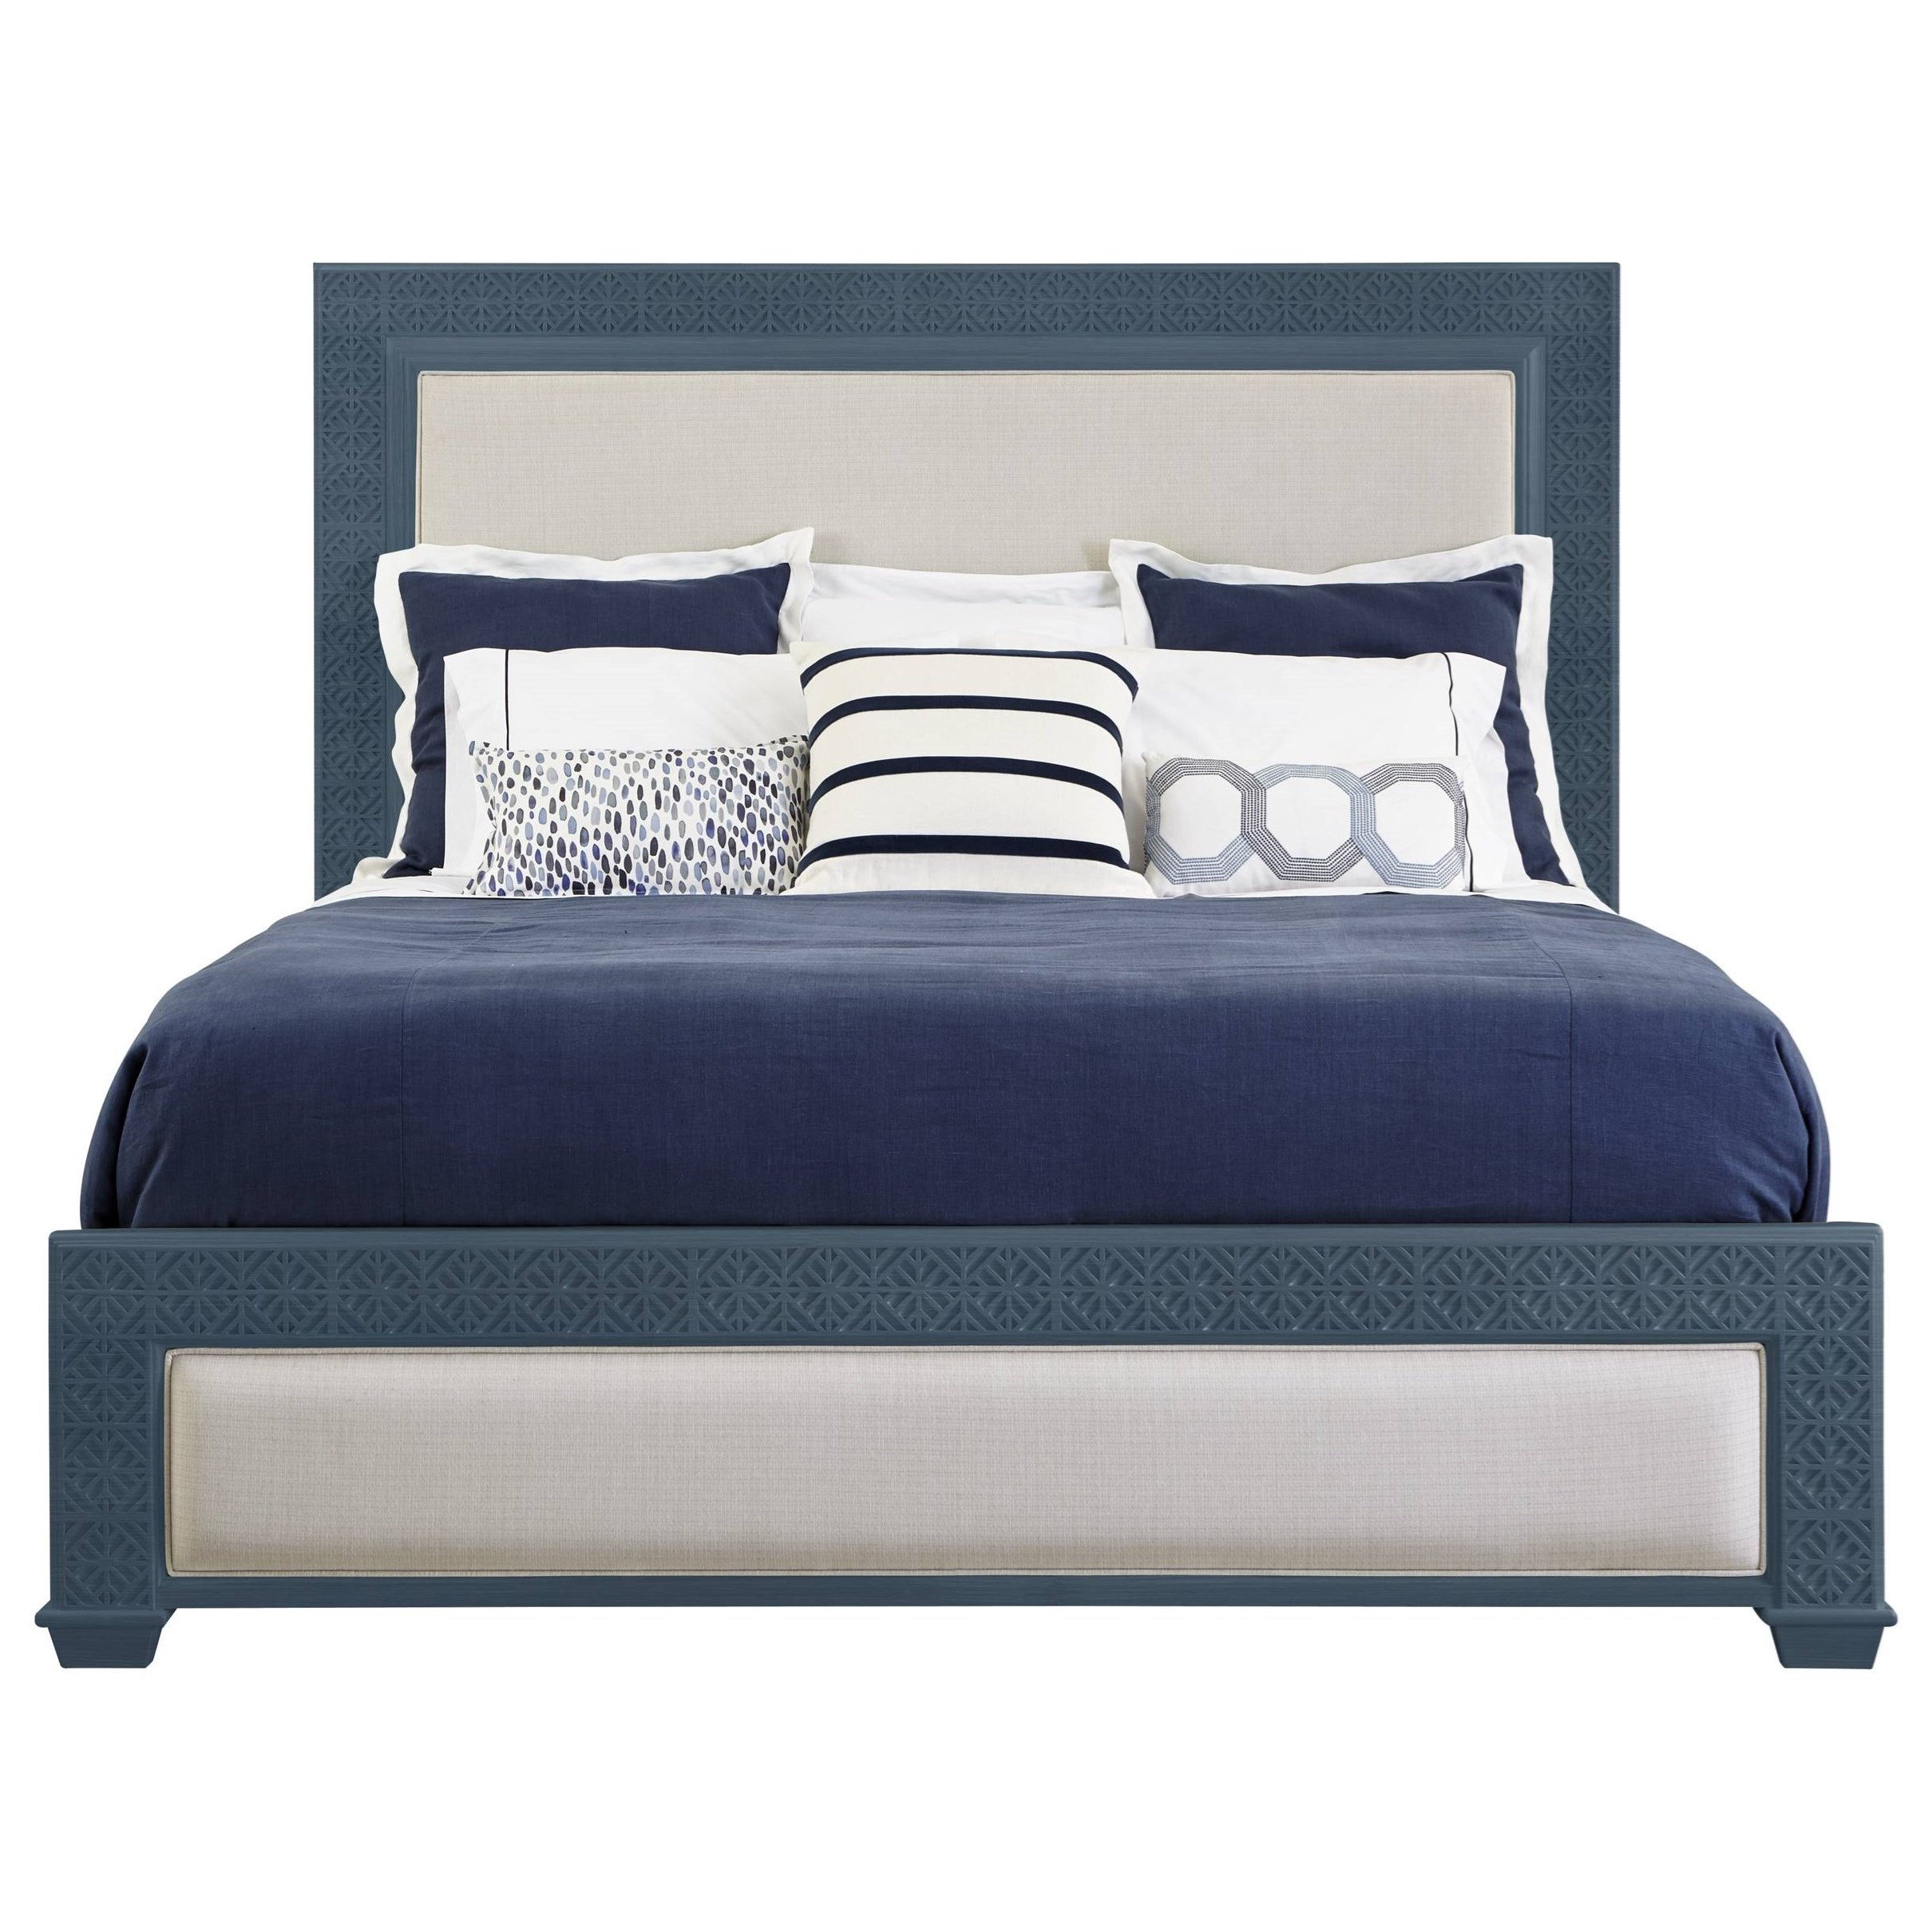 Stanley Furniture Coastal Living Oasis Queen Catalina Panel Bed - Item Number: 527-43-40